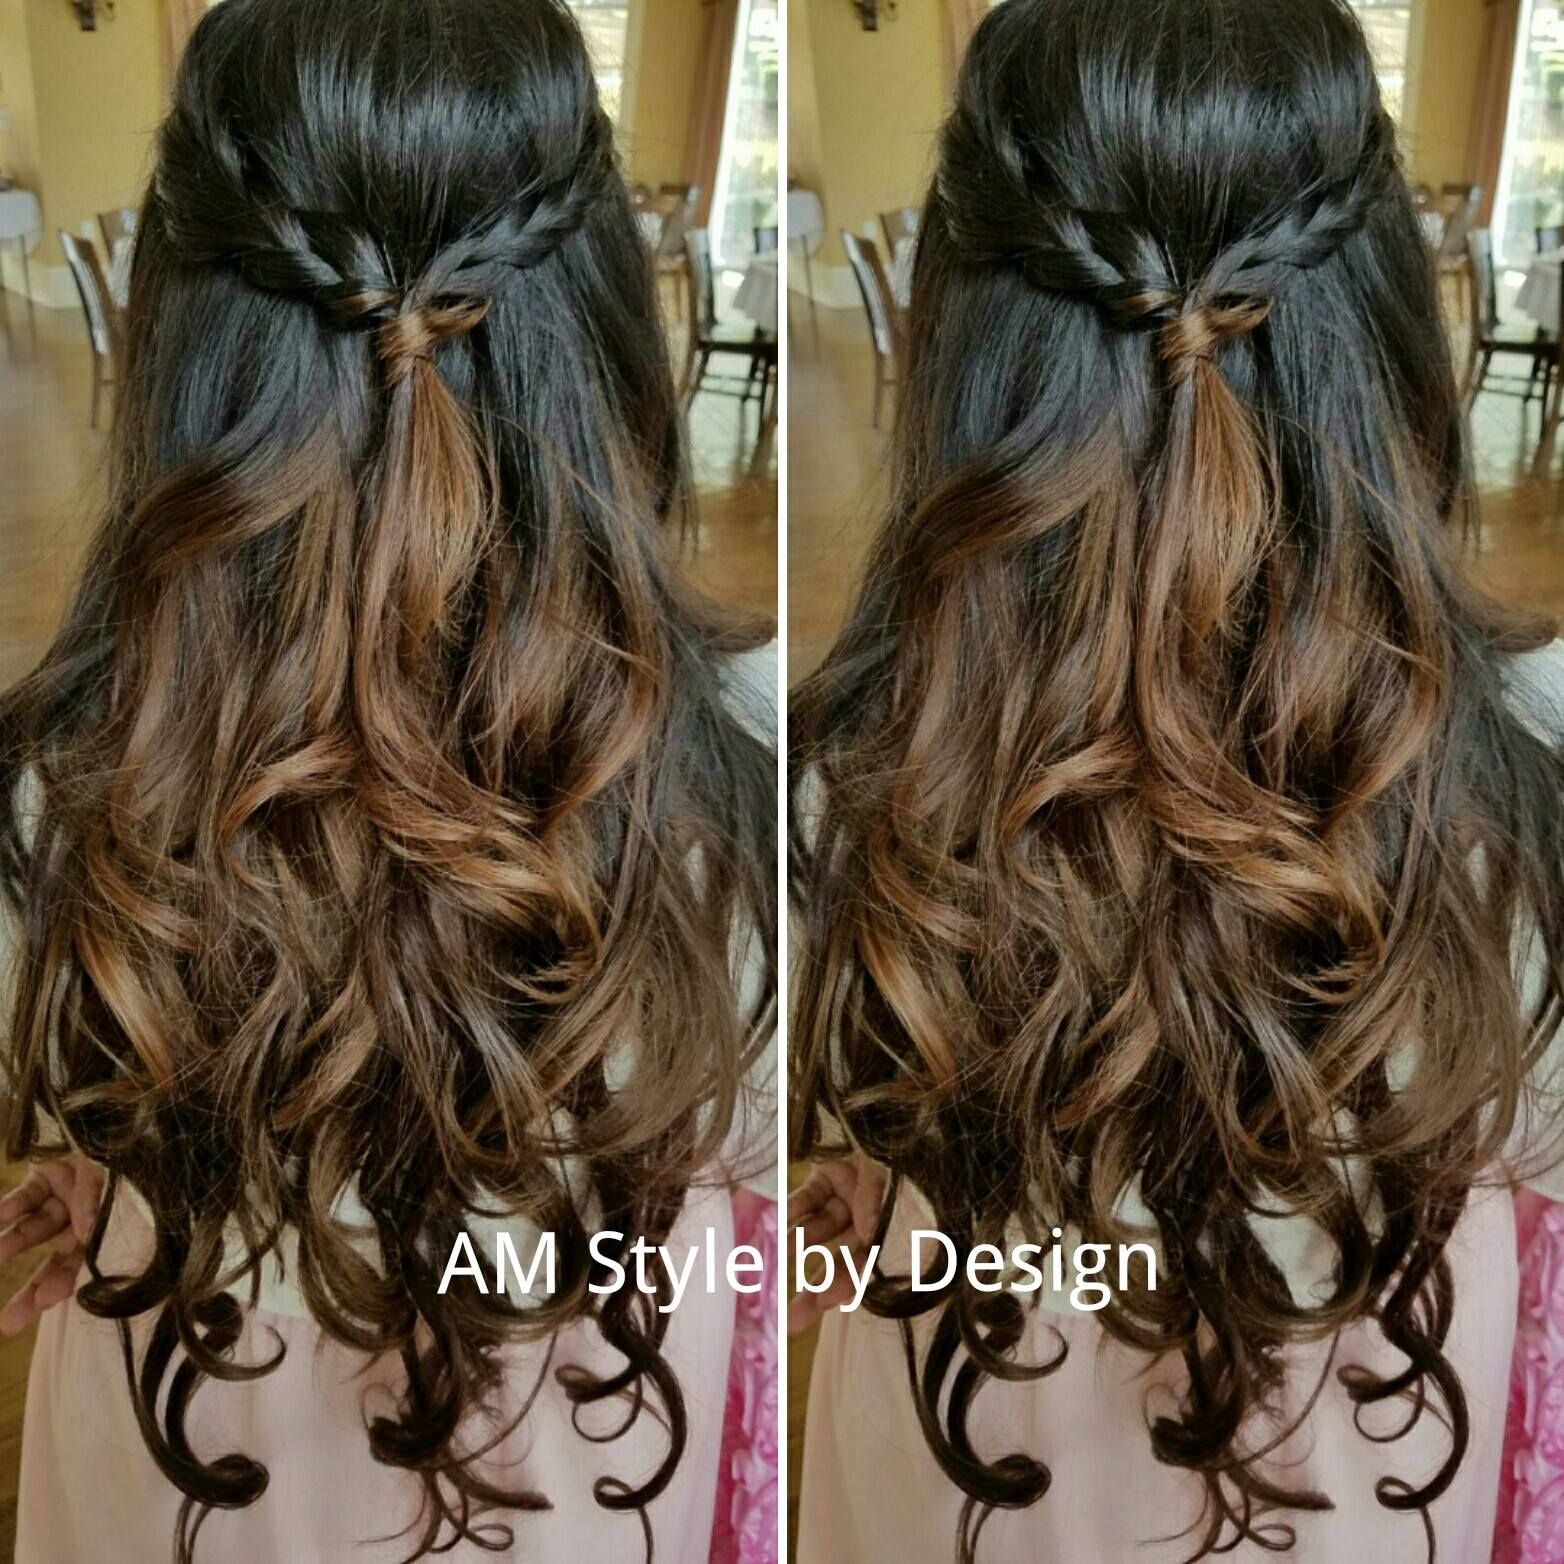 Just Finished Coloring Styling My Clients Hair For Her Baby Shower Amstylebydesign Amstylebydesignfb Baby Shower Hair Styles Hair Styles Curled Hairstyles